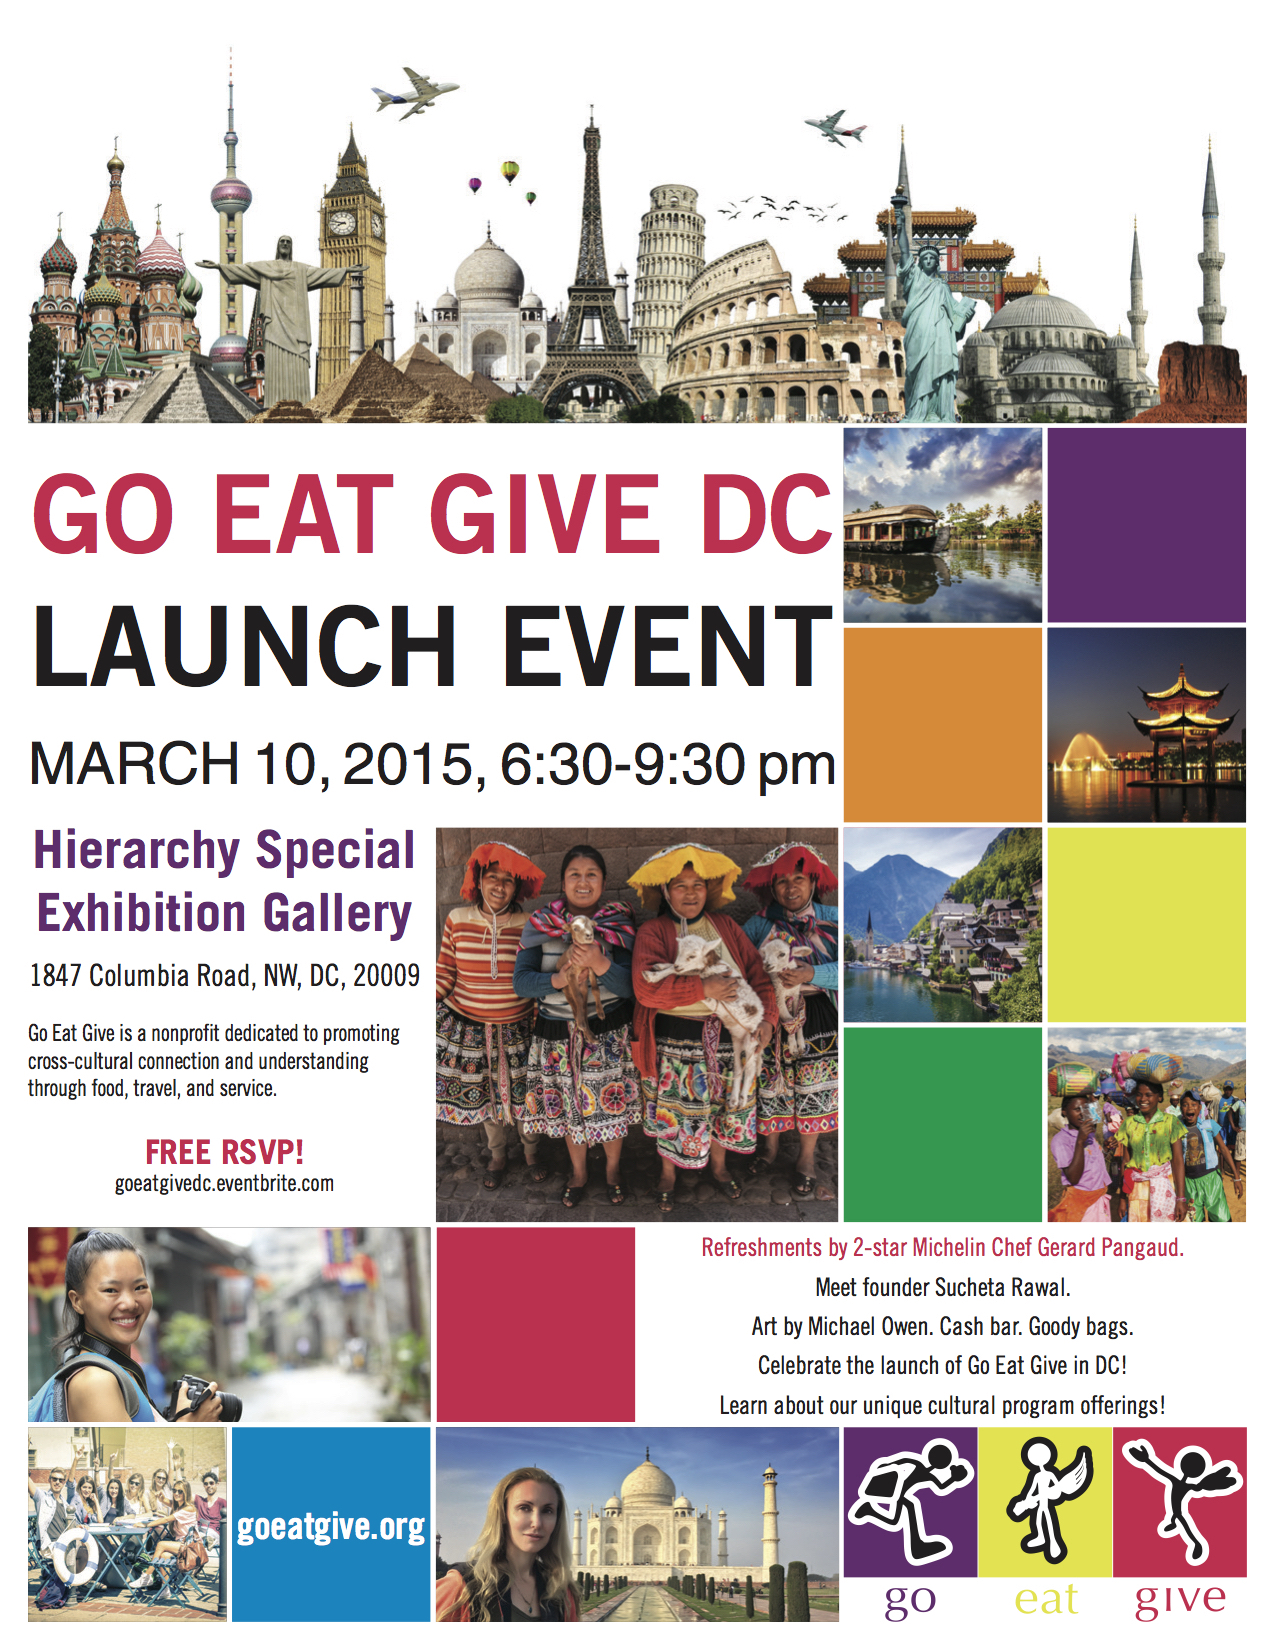 Go Eat Give is Coming to Washington DC